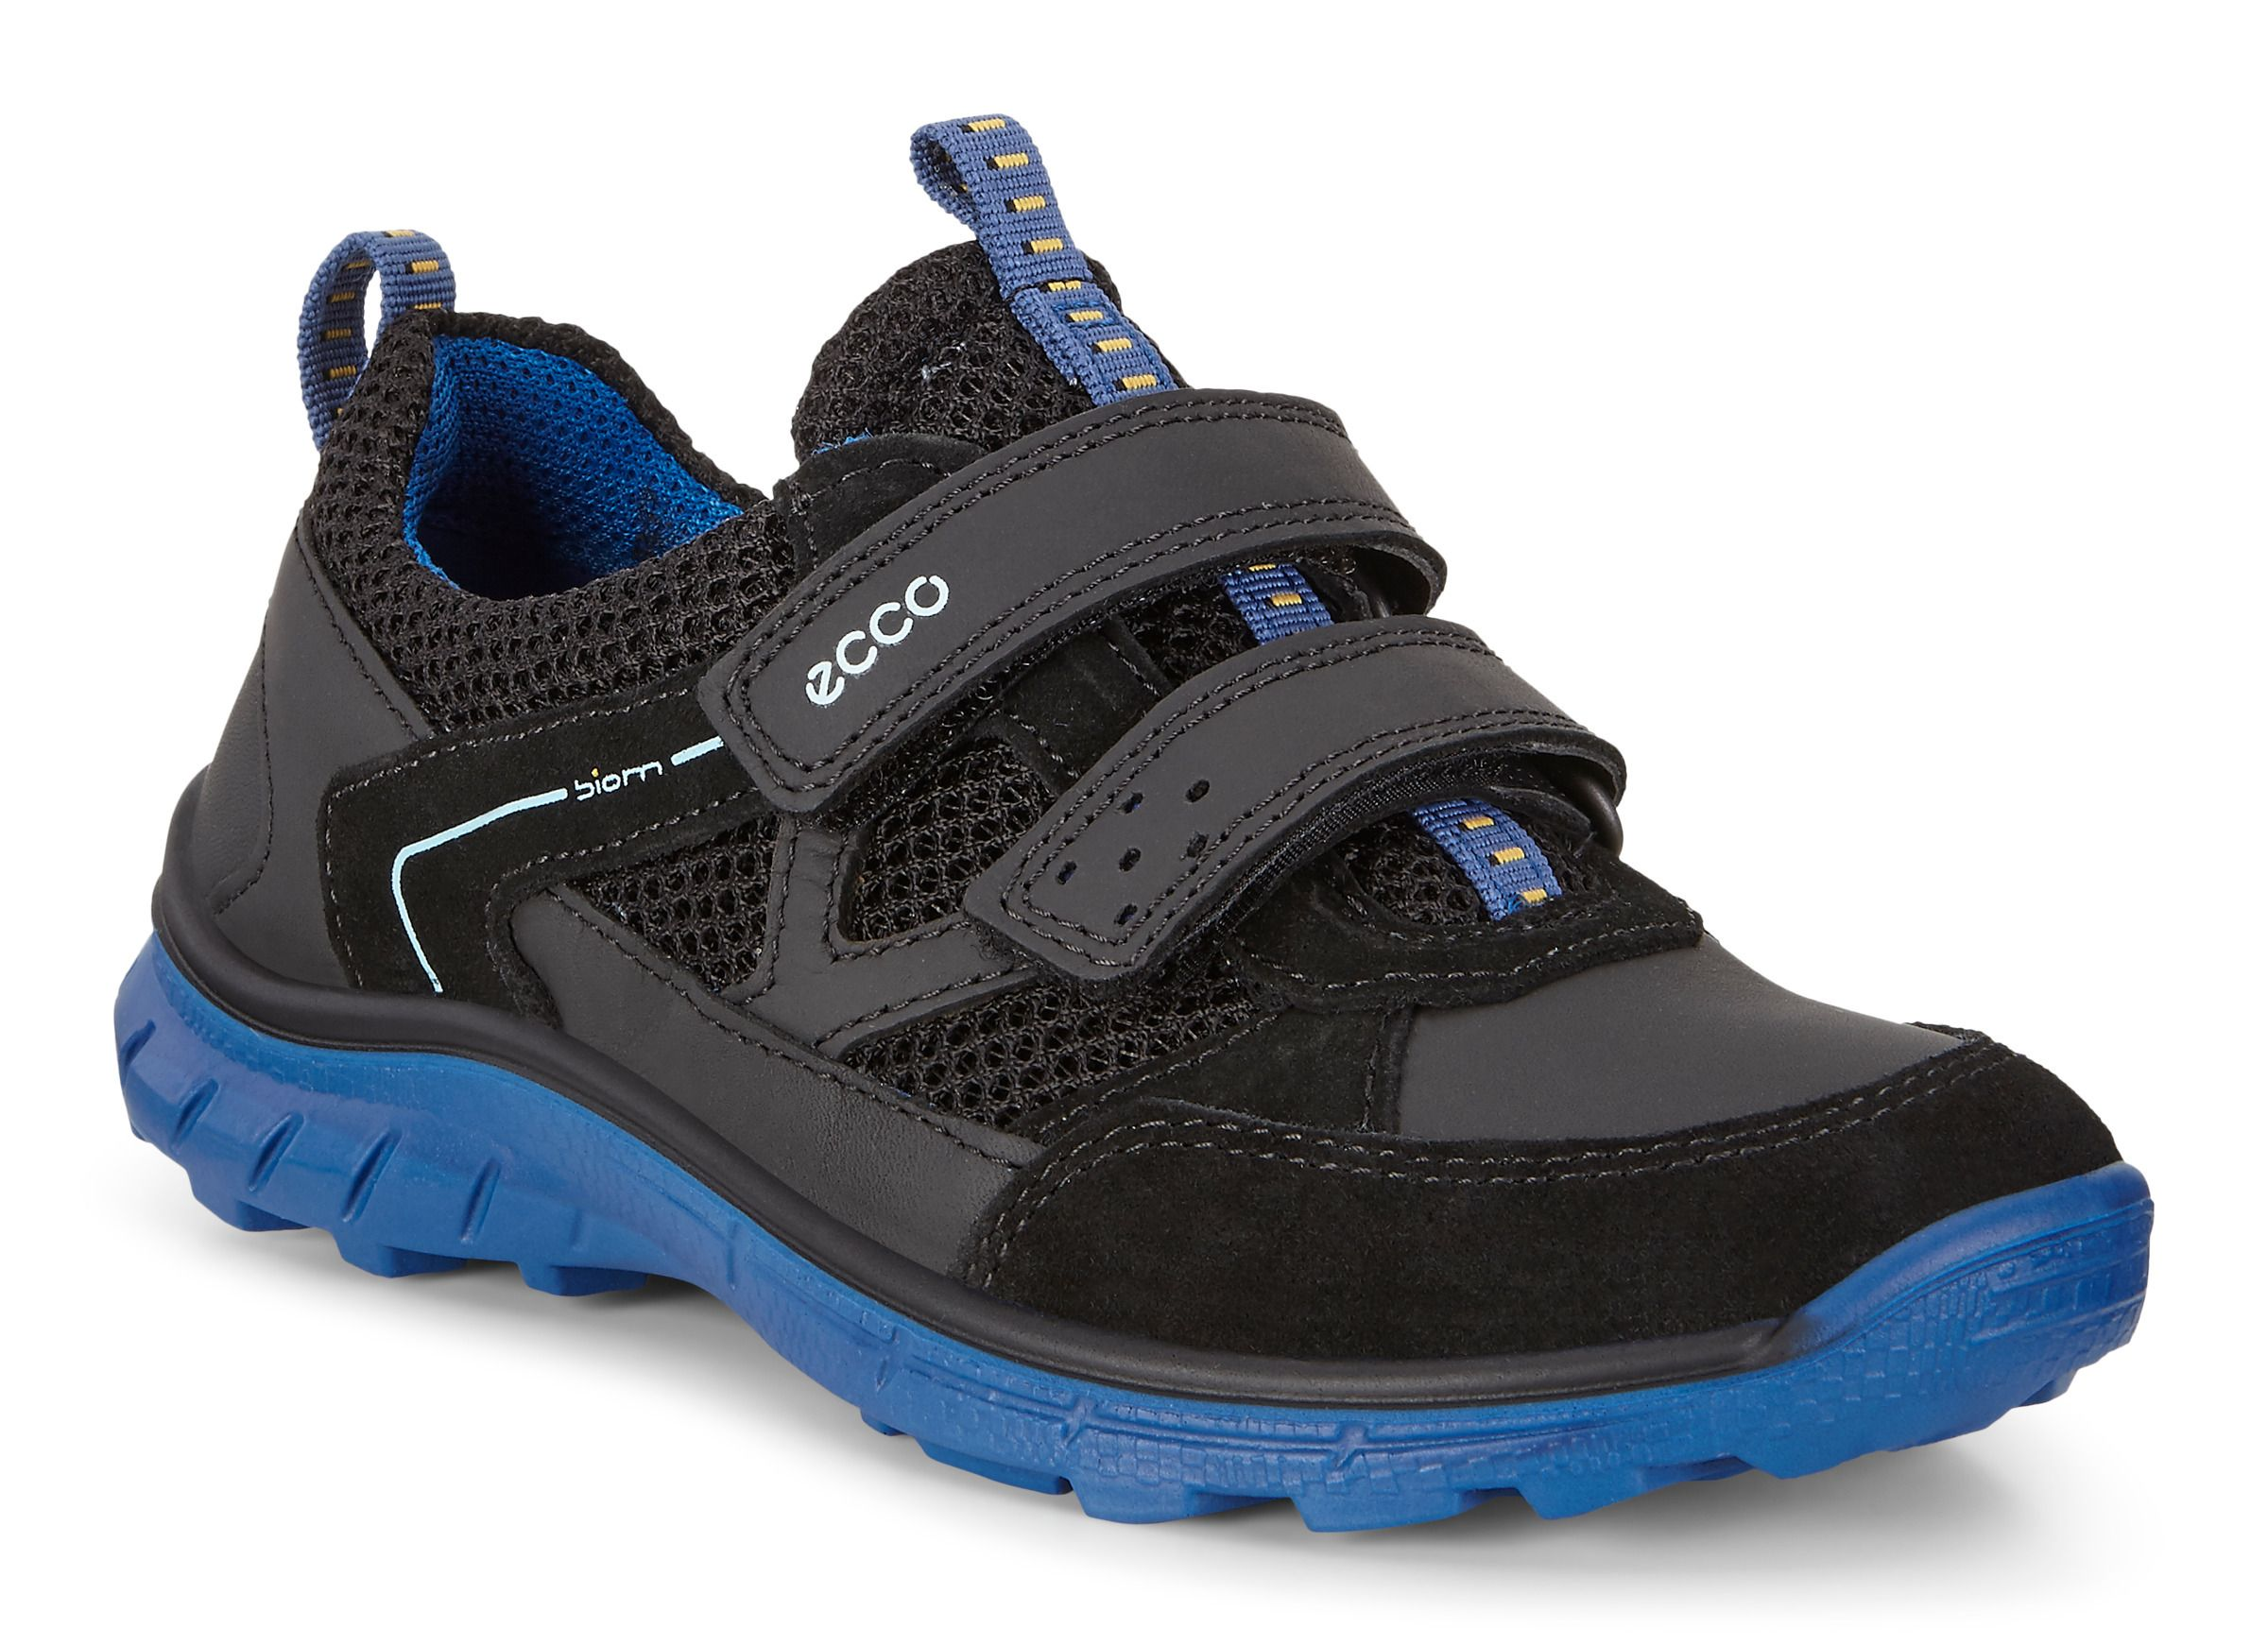 ecco biom trail kids